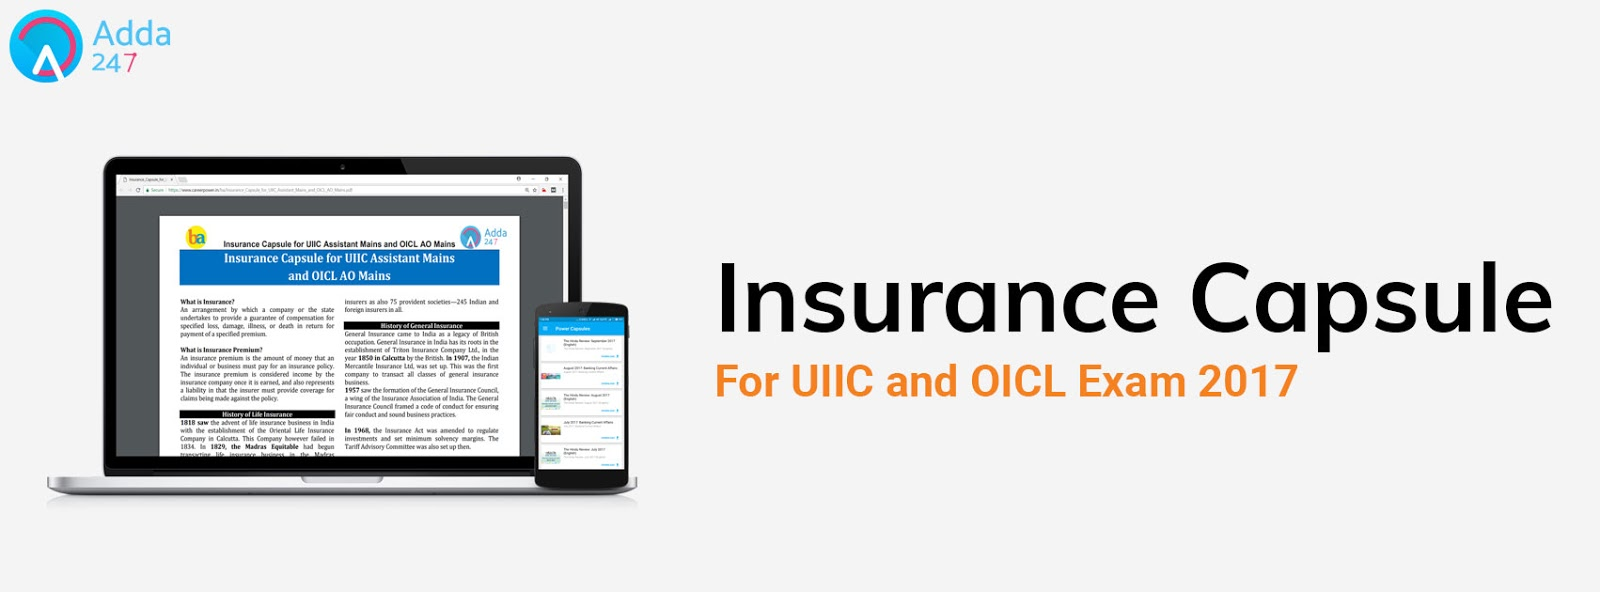 Insurance Capsule For Uiic Assistant And Oicl Ao Mains Exam